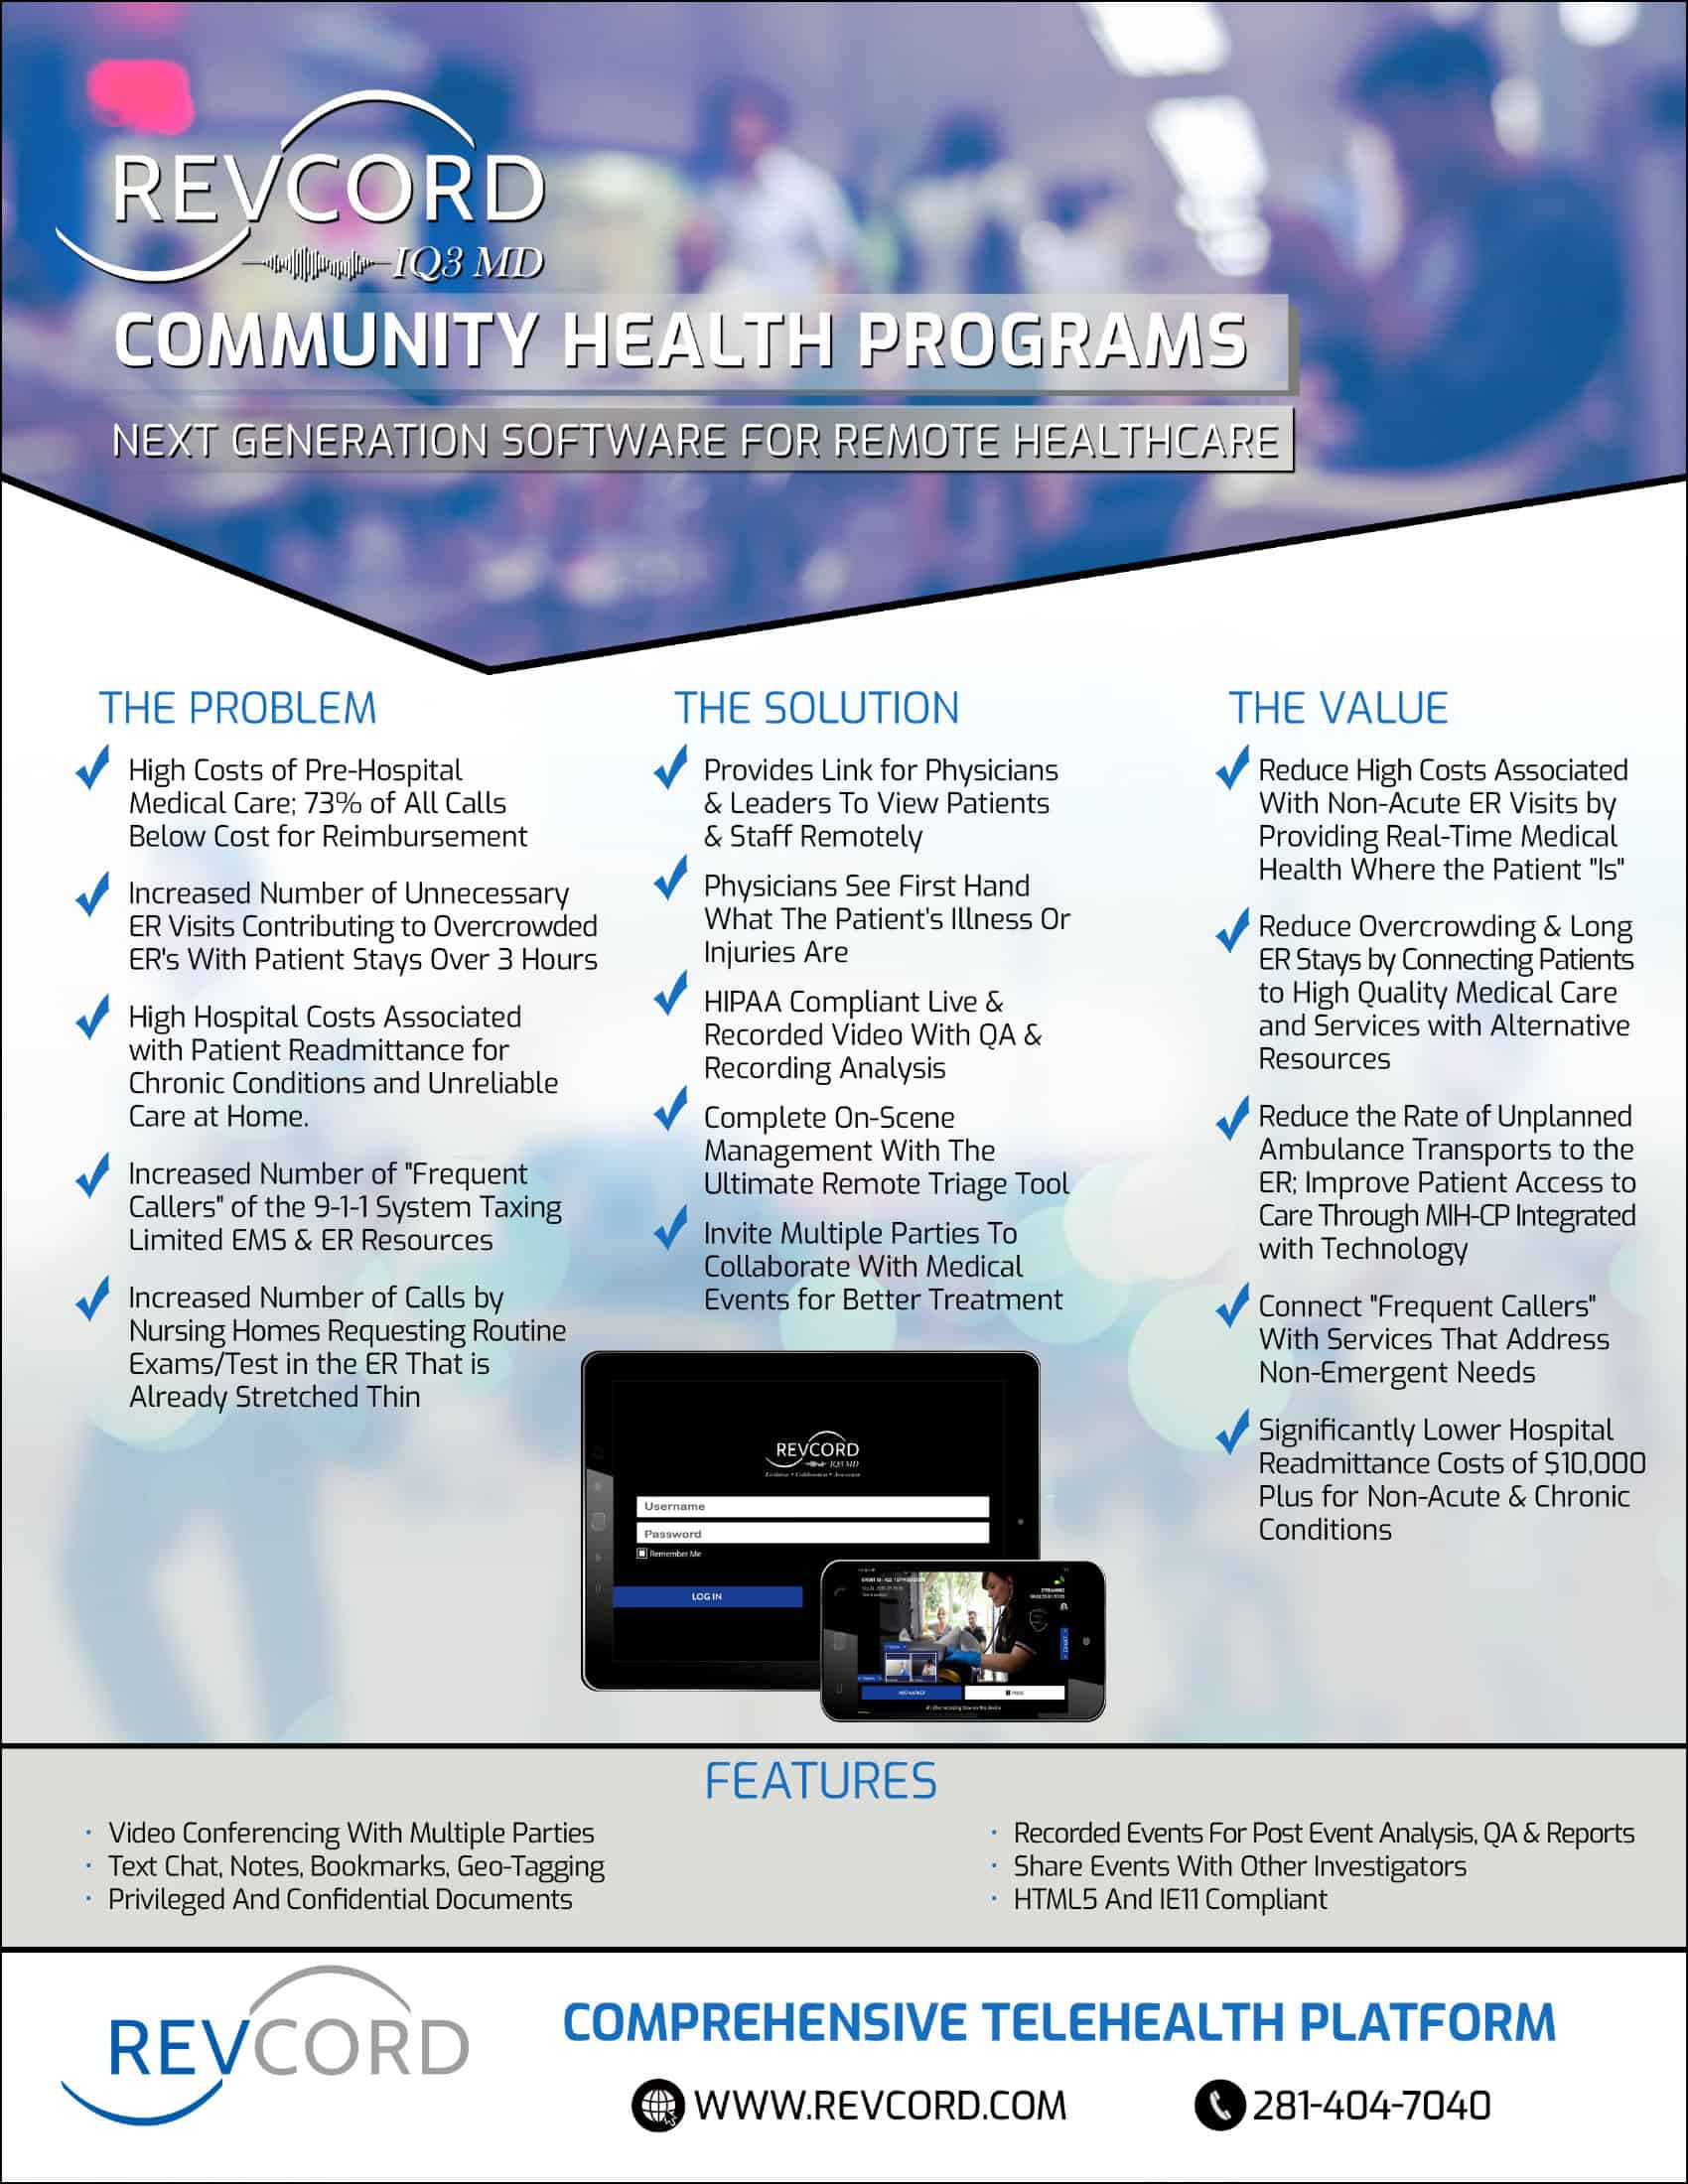 IQ3 MD Community Health